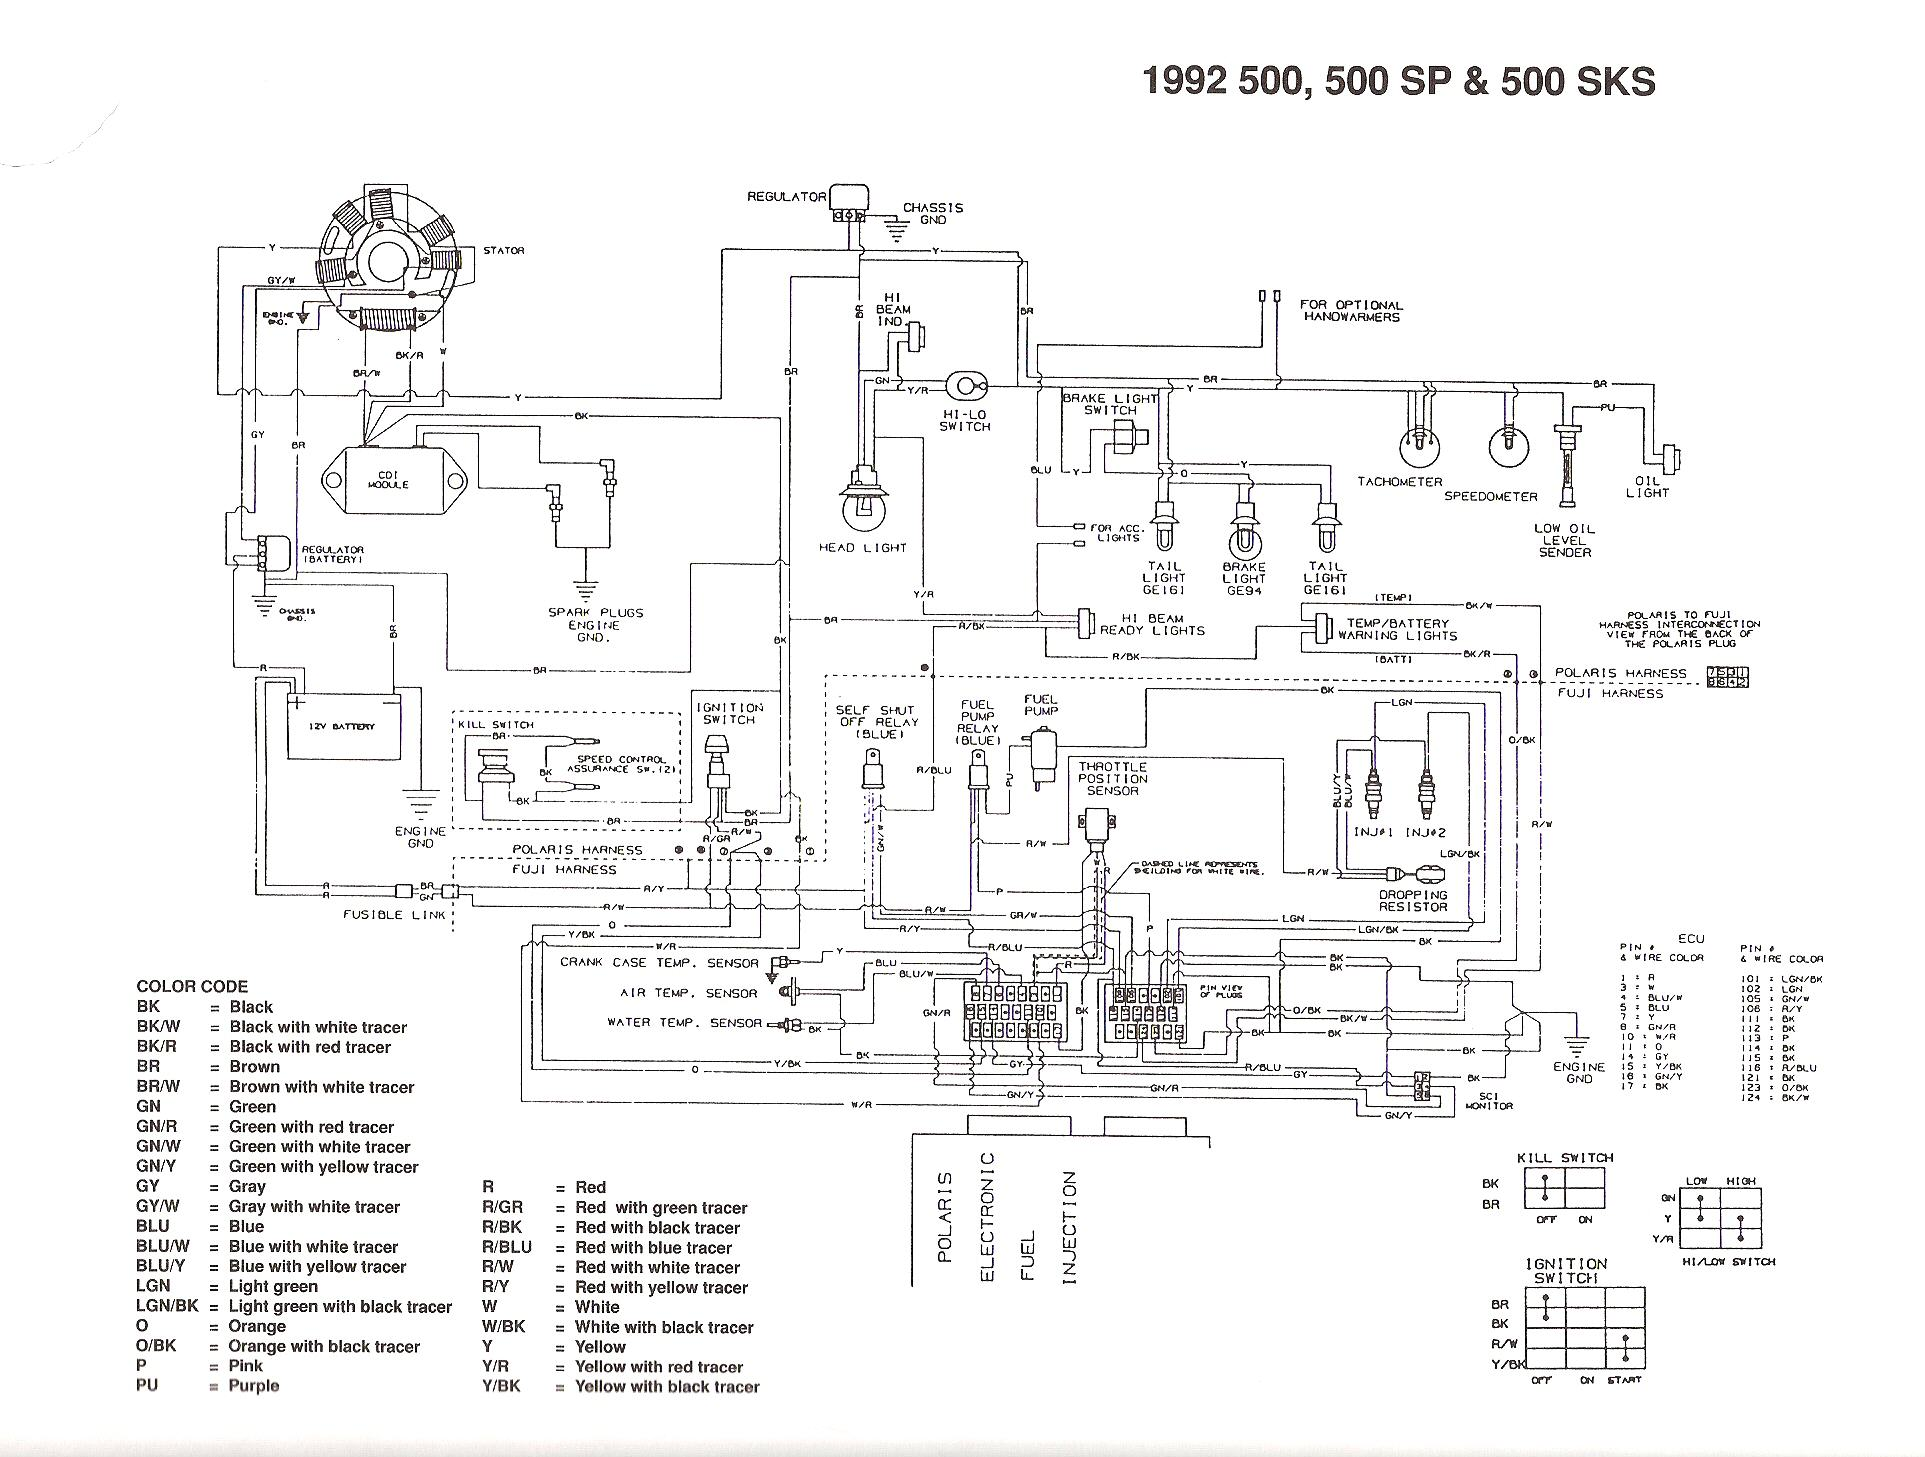 2004 Polaris Sportsman 500 Wiring Diagram Pdf